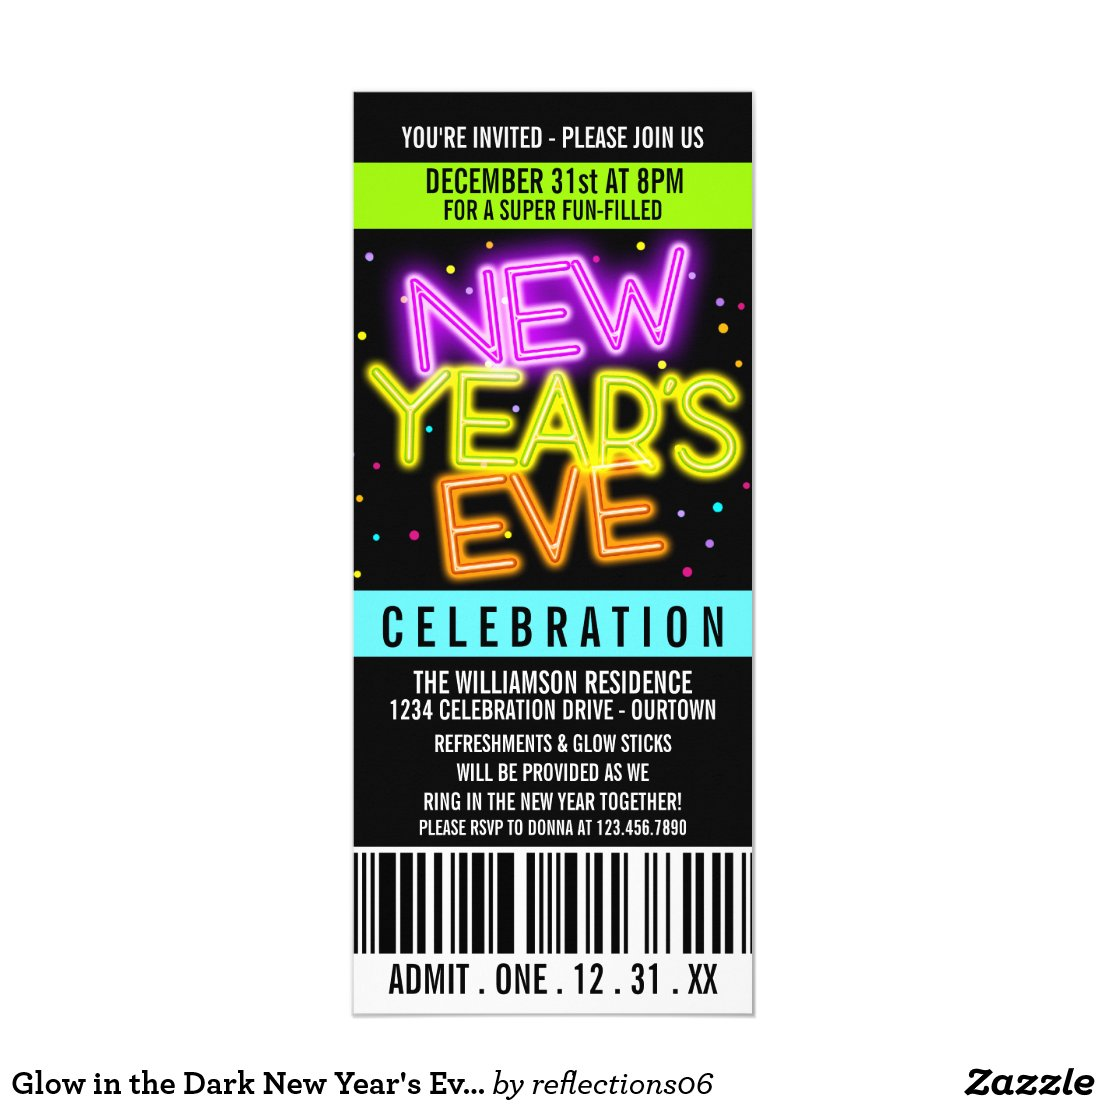 Glow in the Dark New Year's Eve Party Invitations